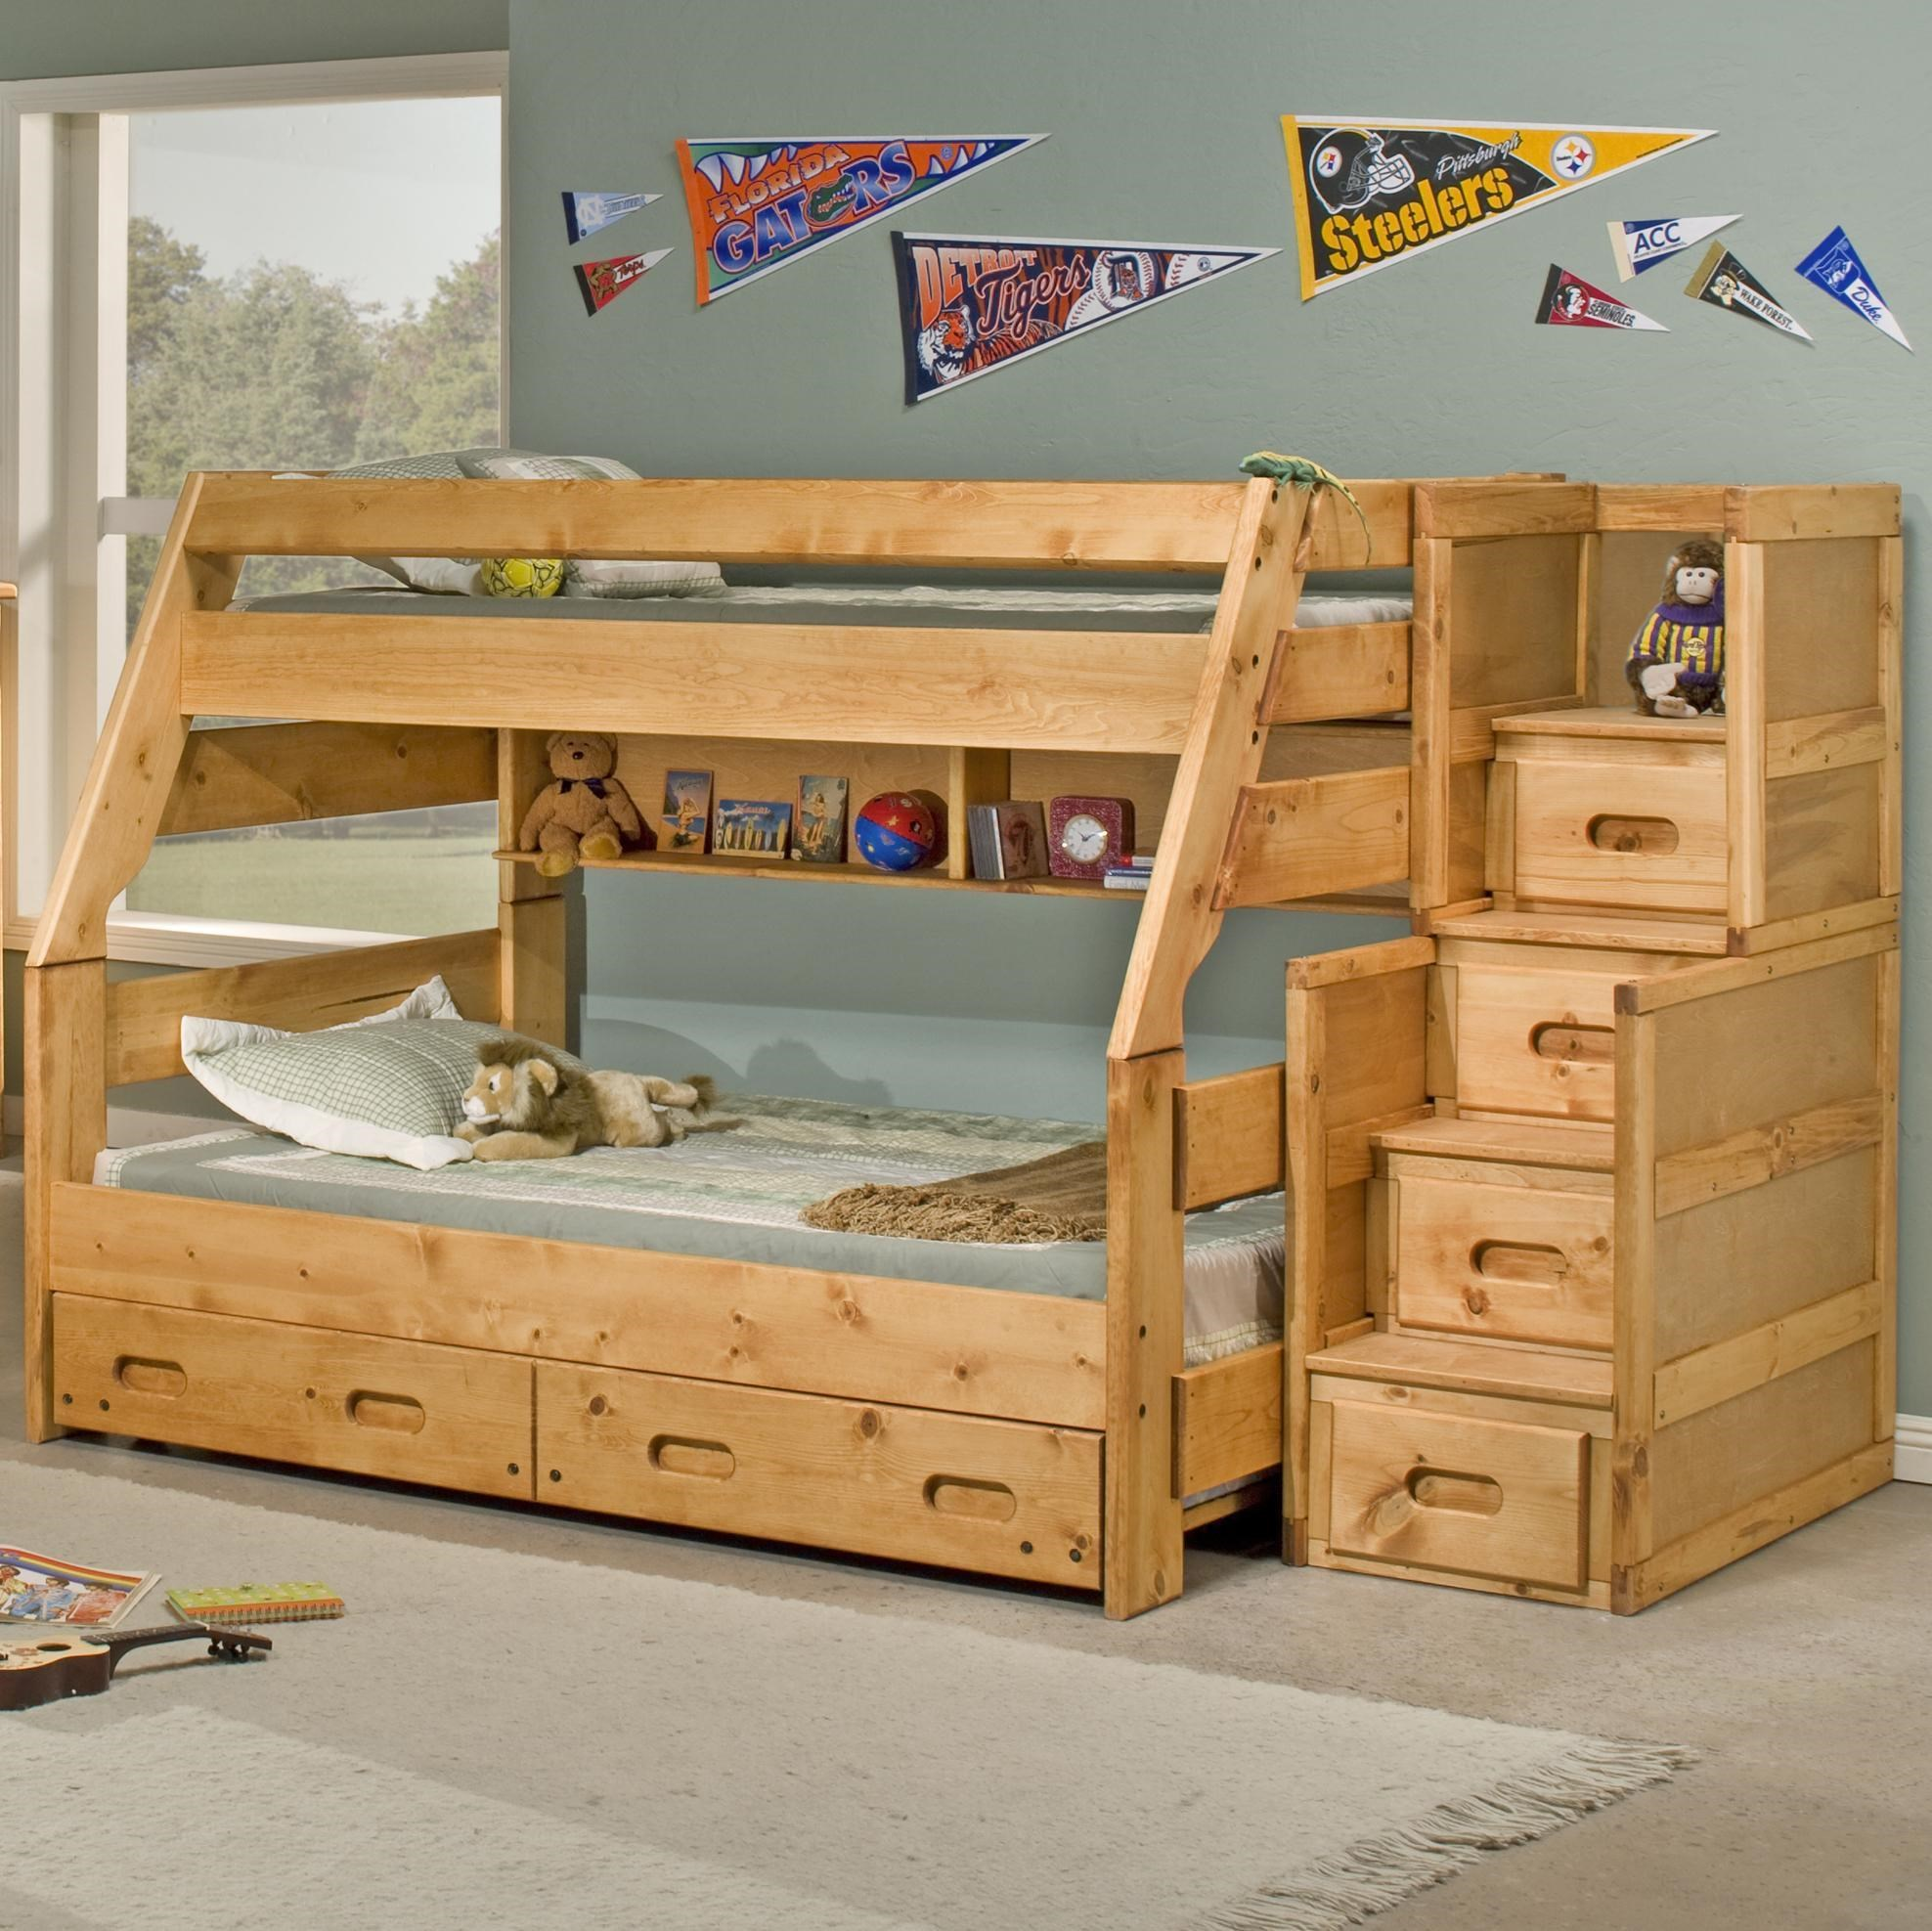 Trendwood Sedona Twin High Sierra Bunk Bed   Dunk U0026 Bright Furniture   Bunk  Bed